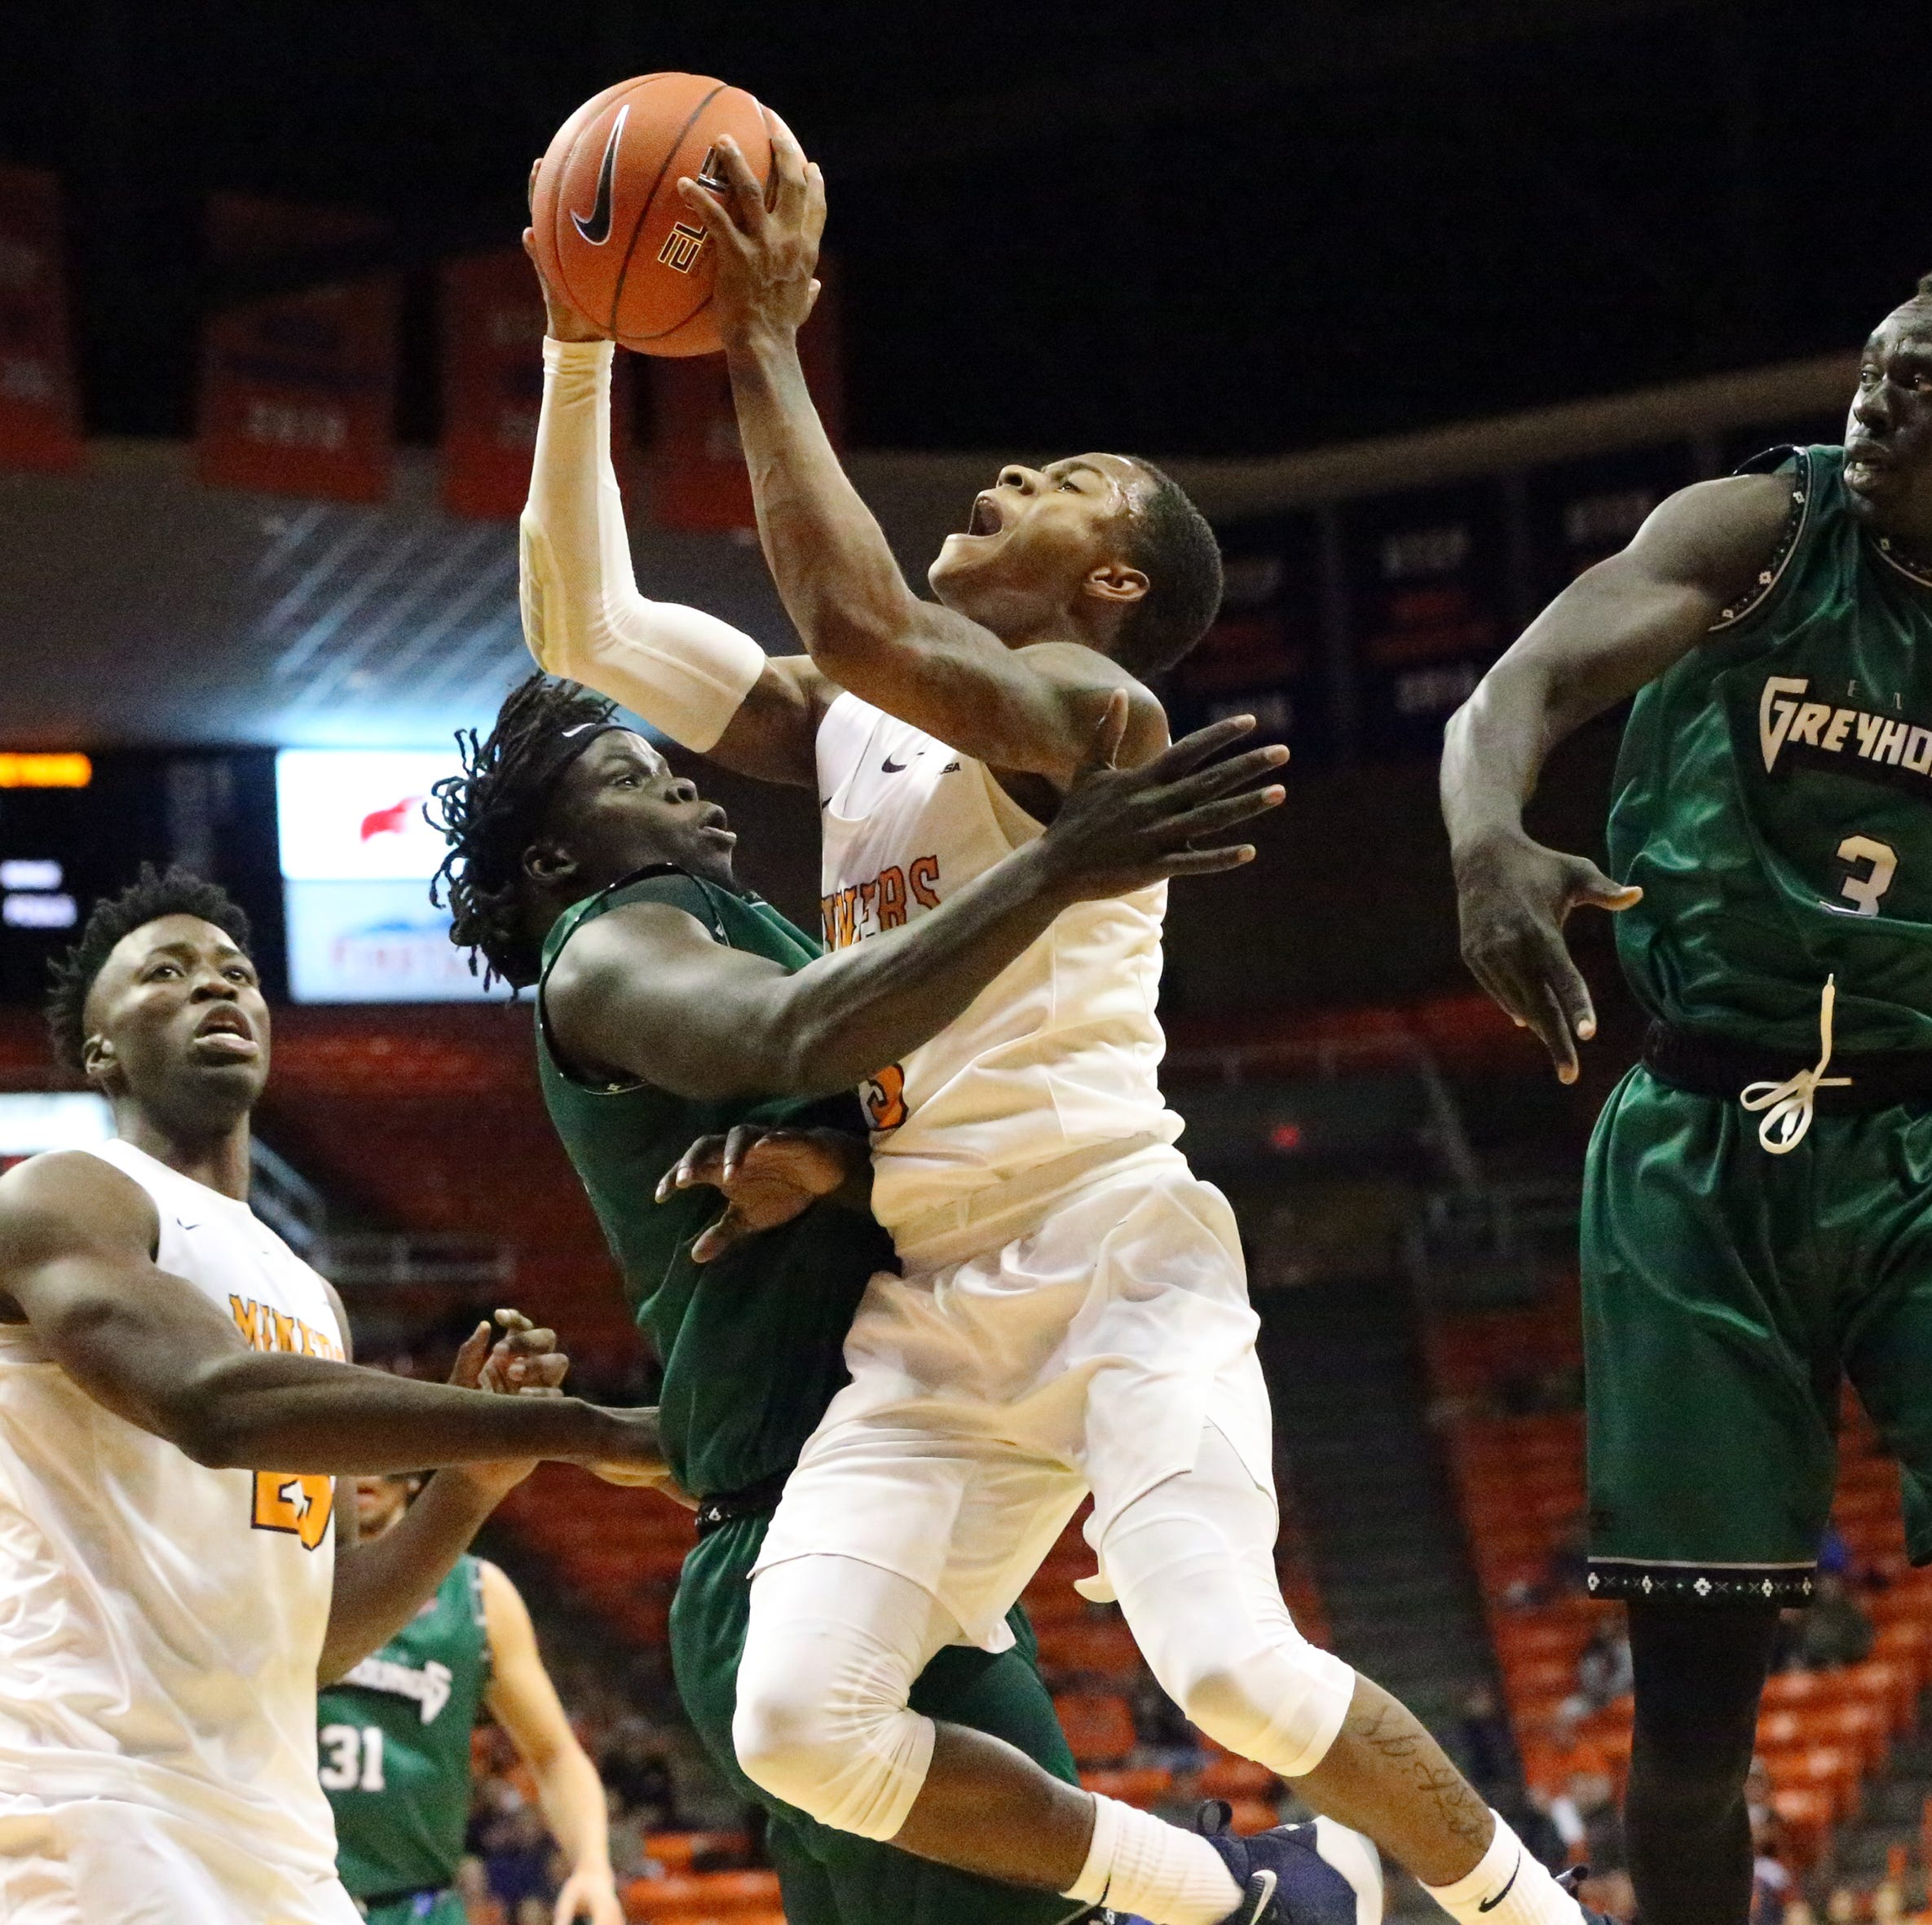 UTEP guards to transfer: Gilyard and Magee to leave men's basketball team